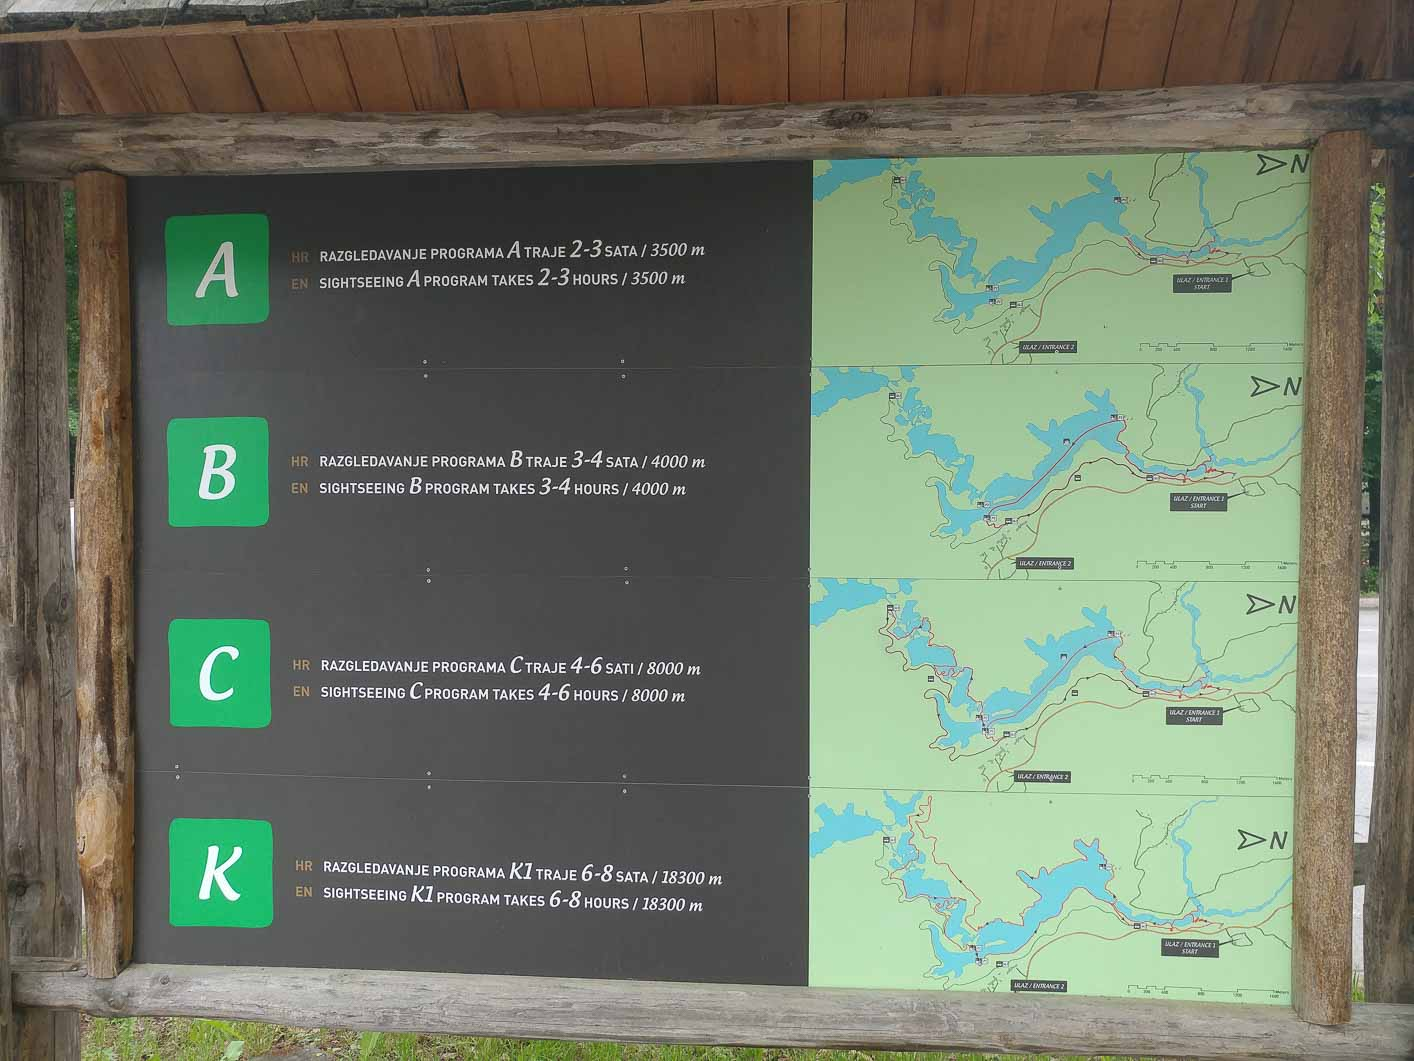 Plitvice lakes, trail programs from entrance 1